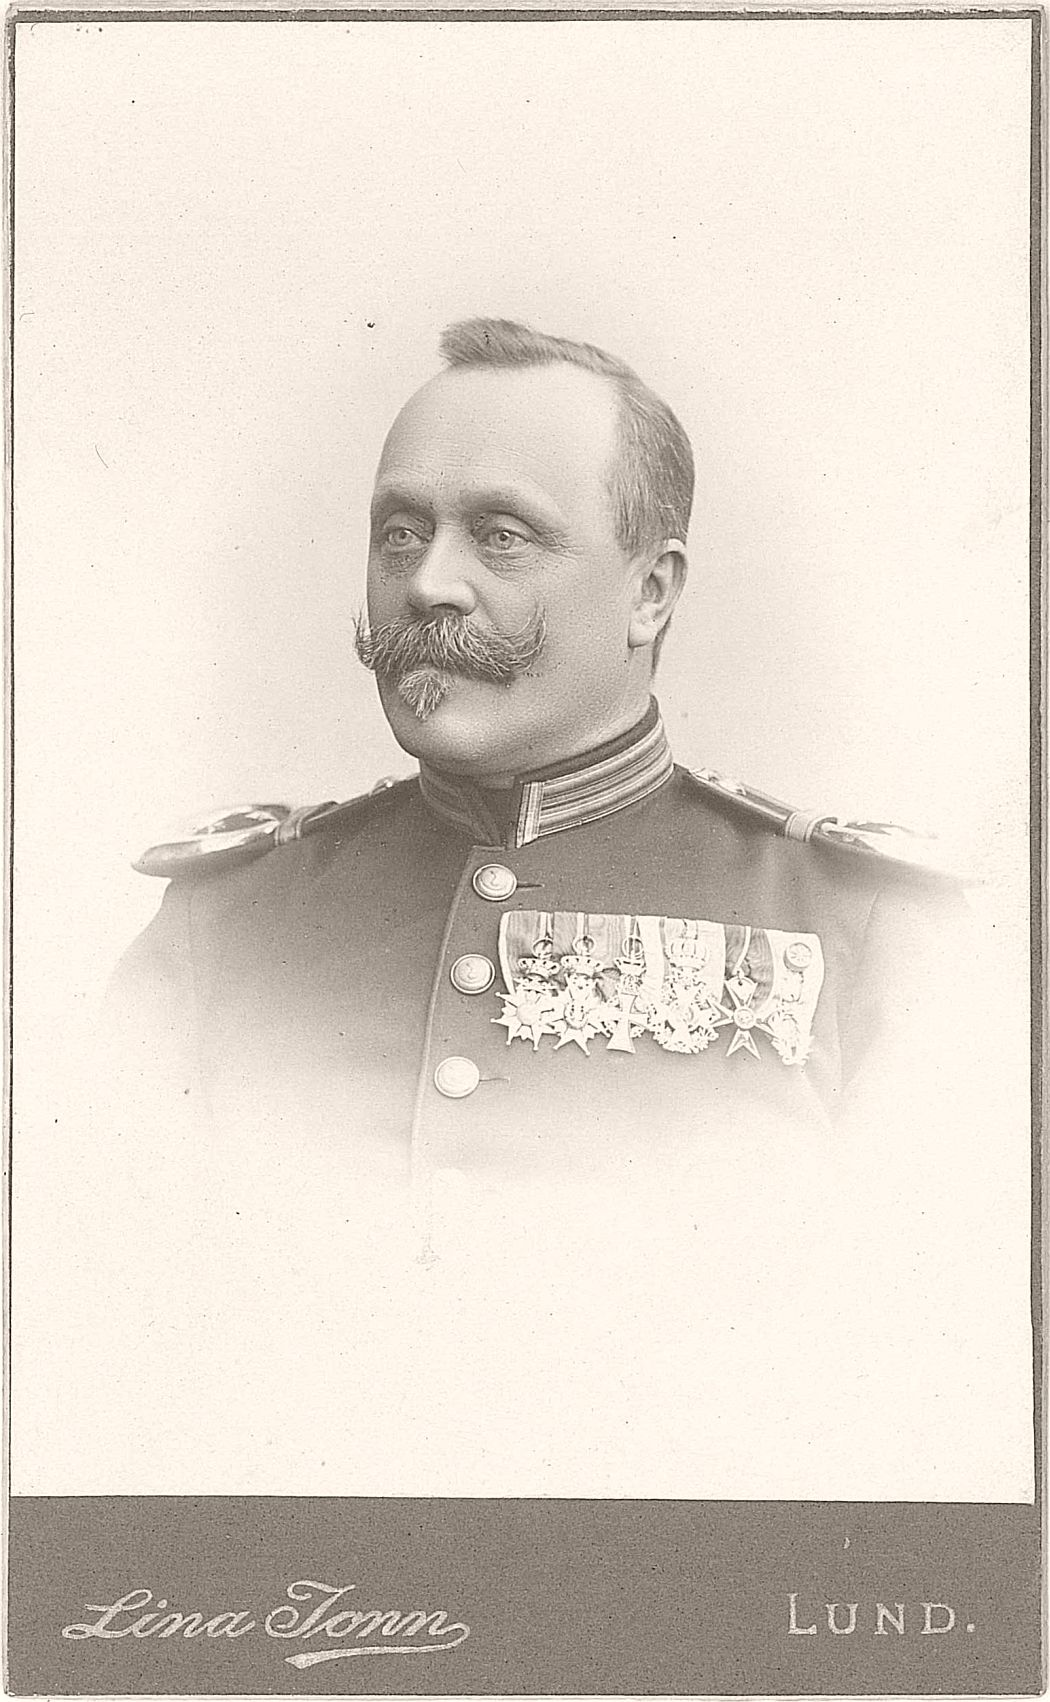 Carl Norlander (1846-1916), Swedish officer and gymnastics teacher; master of fencing at Lund University 1882-1916.